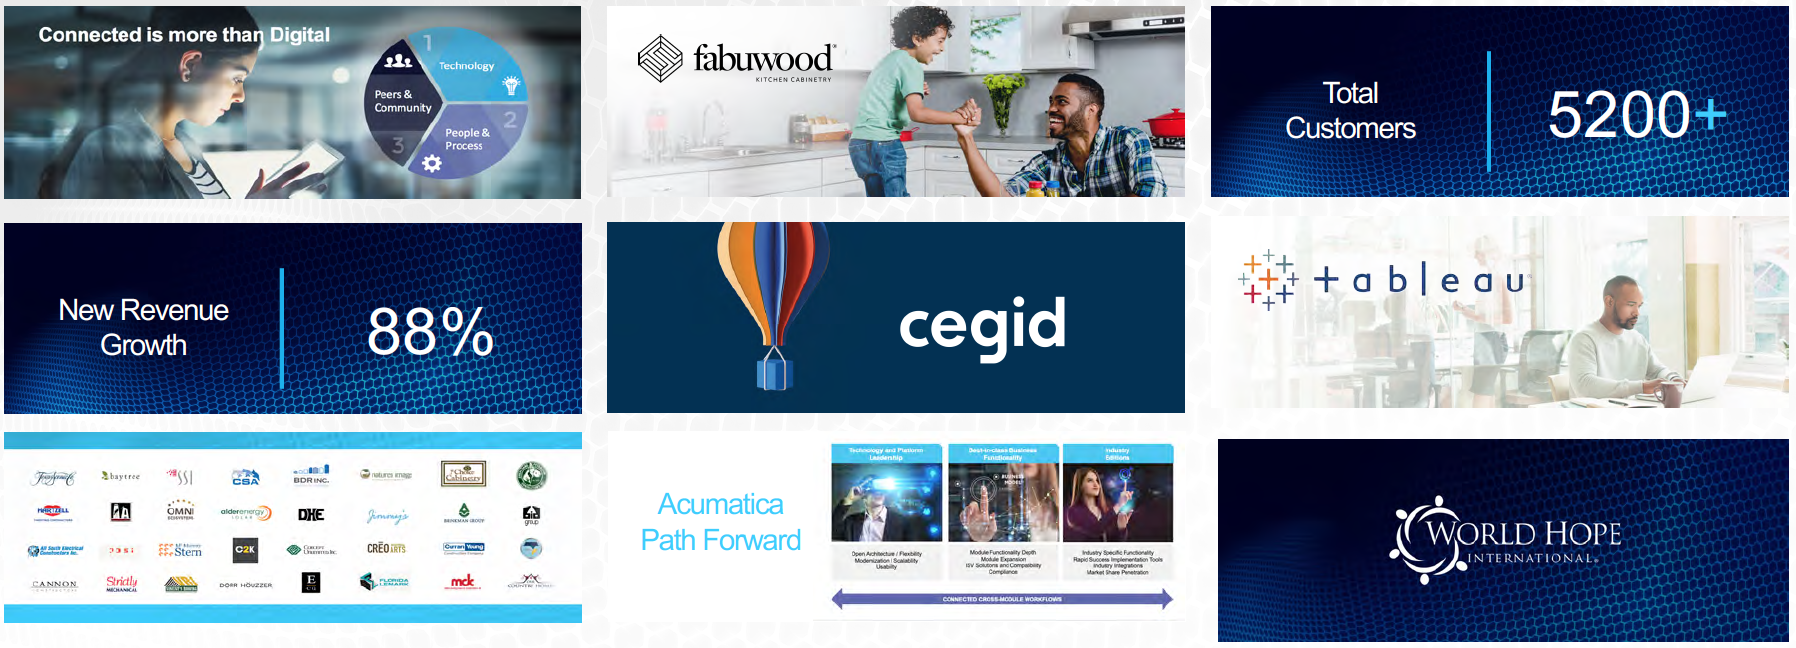 Acumatica Summit 2019—Construction Cloud ERP and More